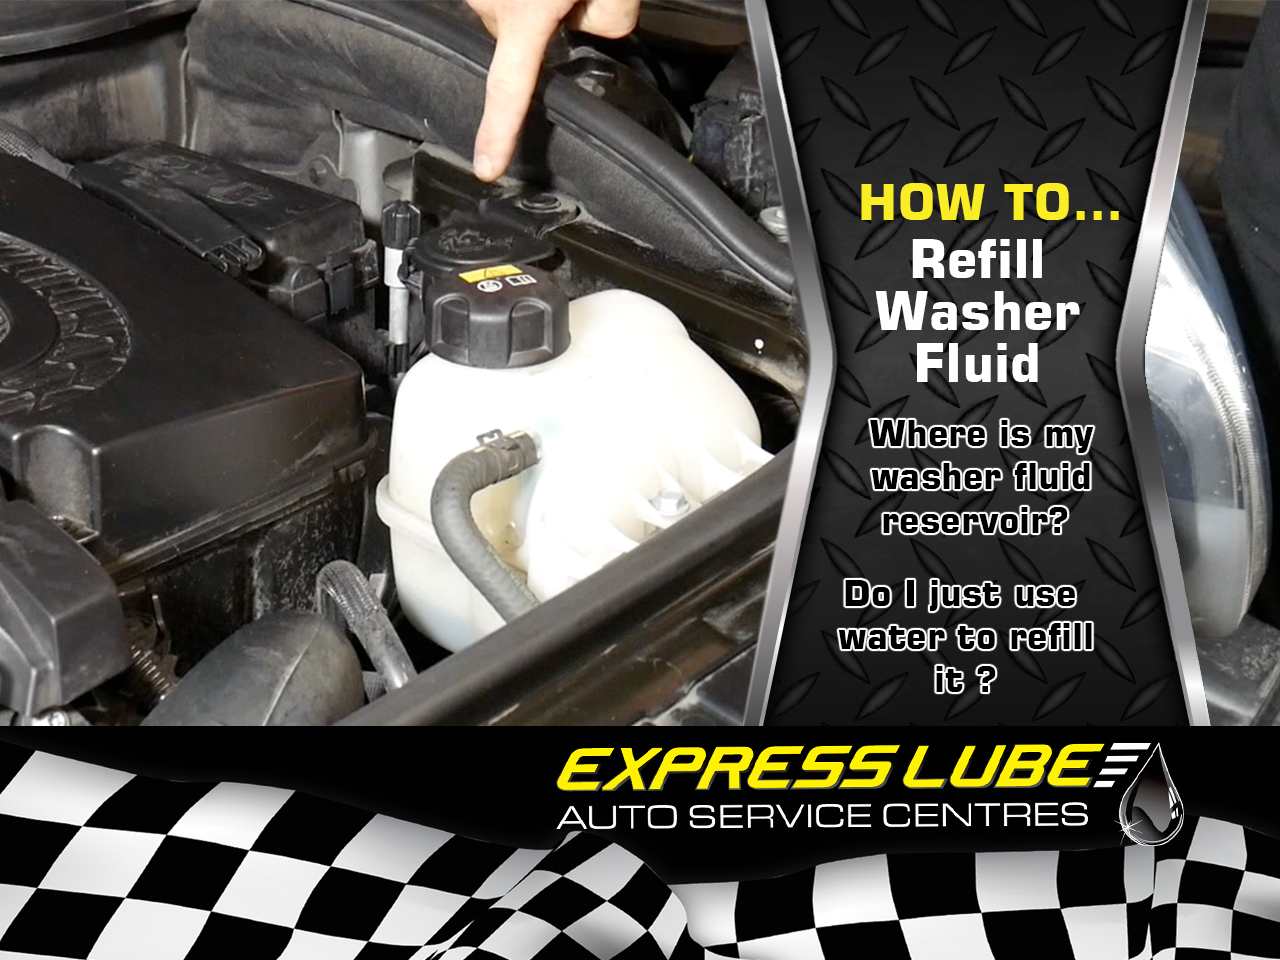 How to refill washer fluid